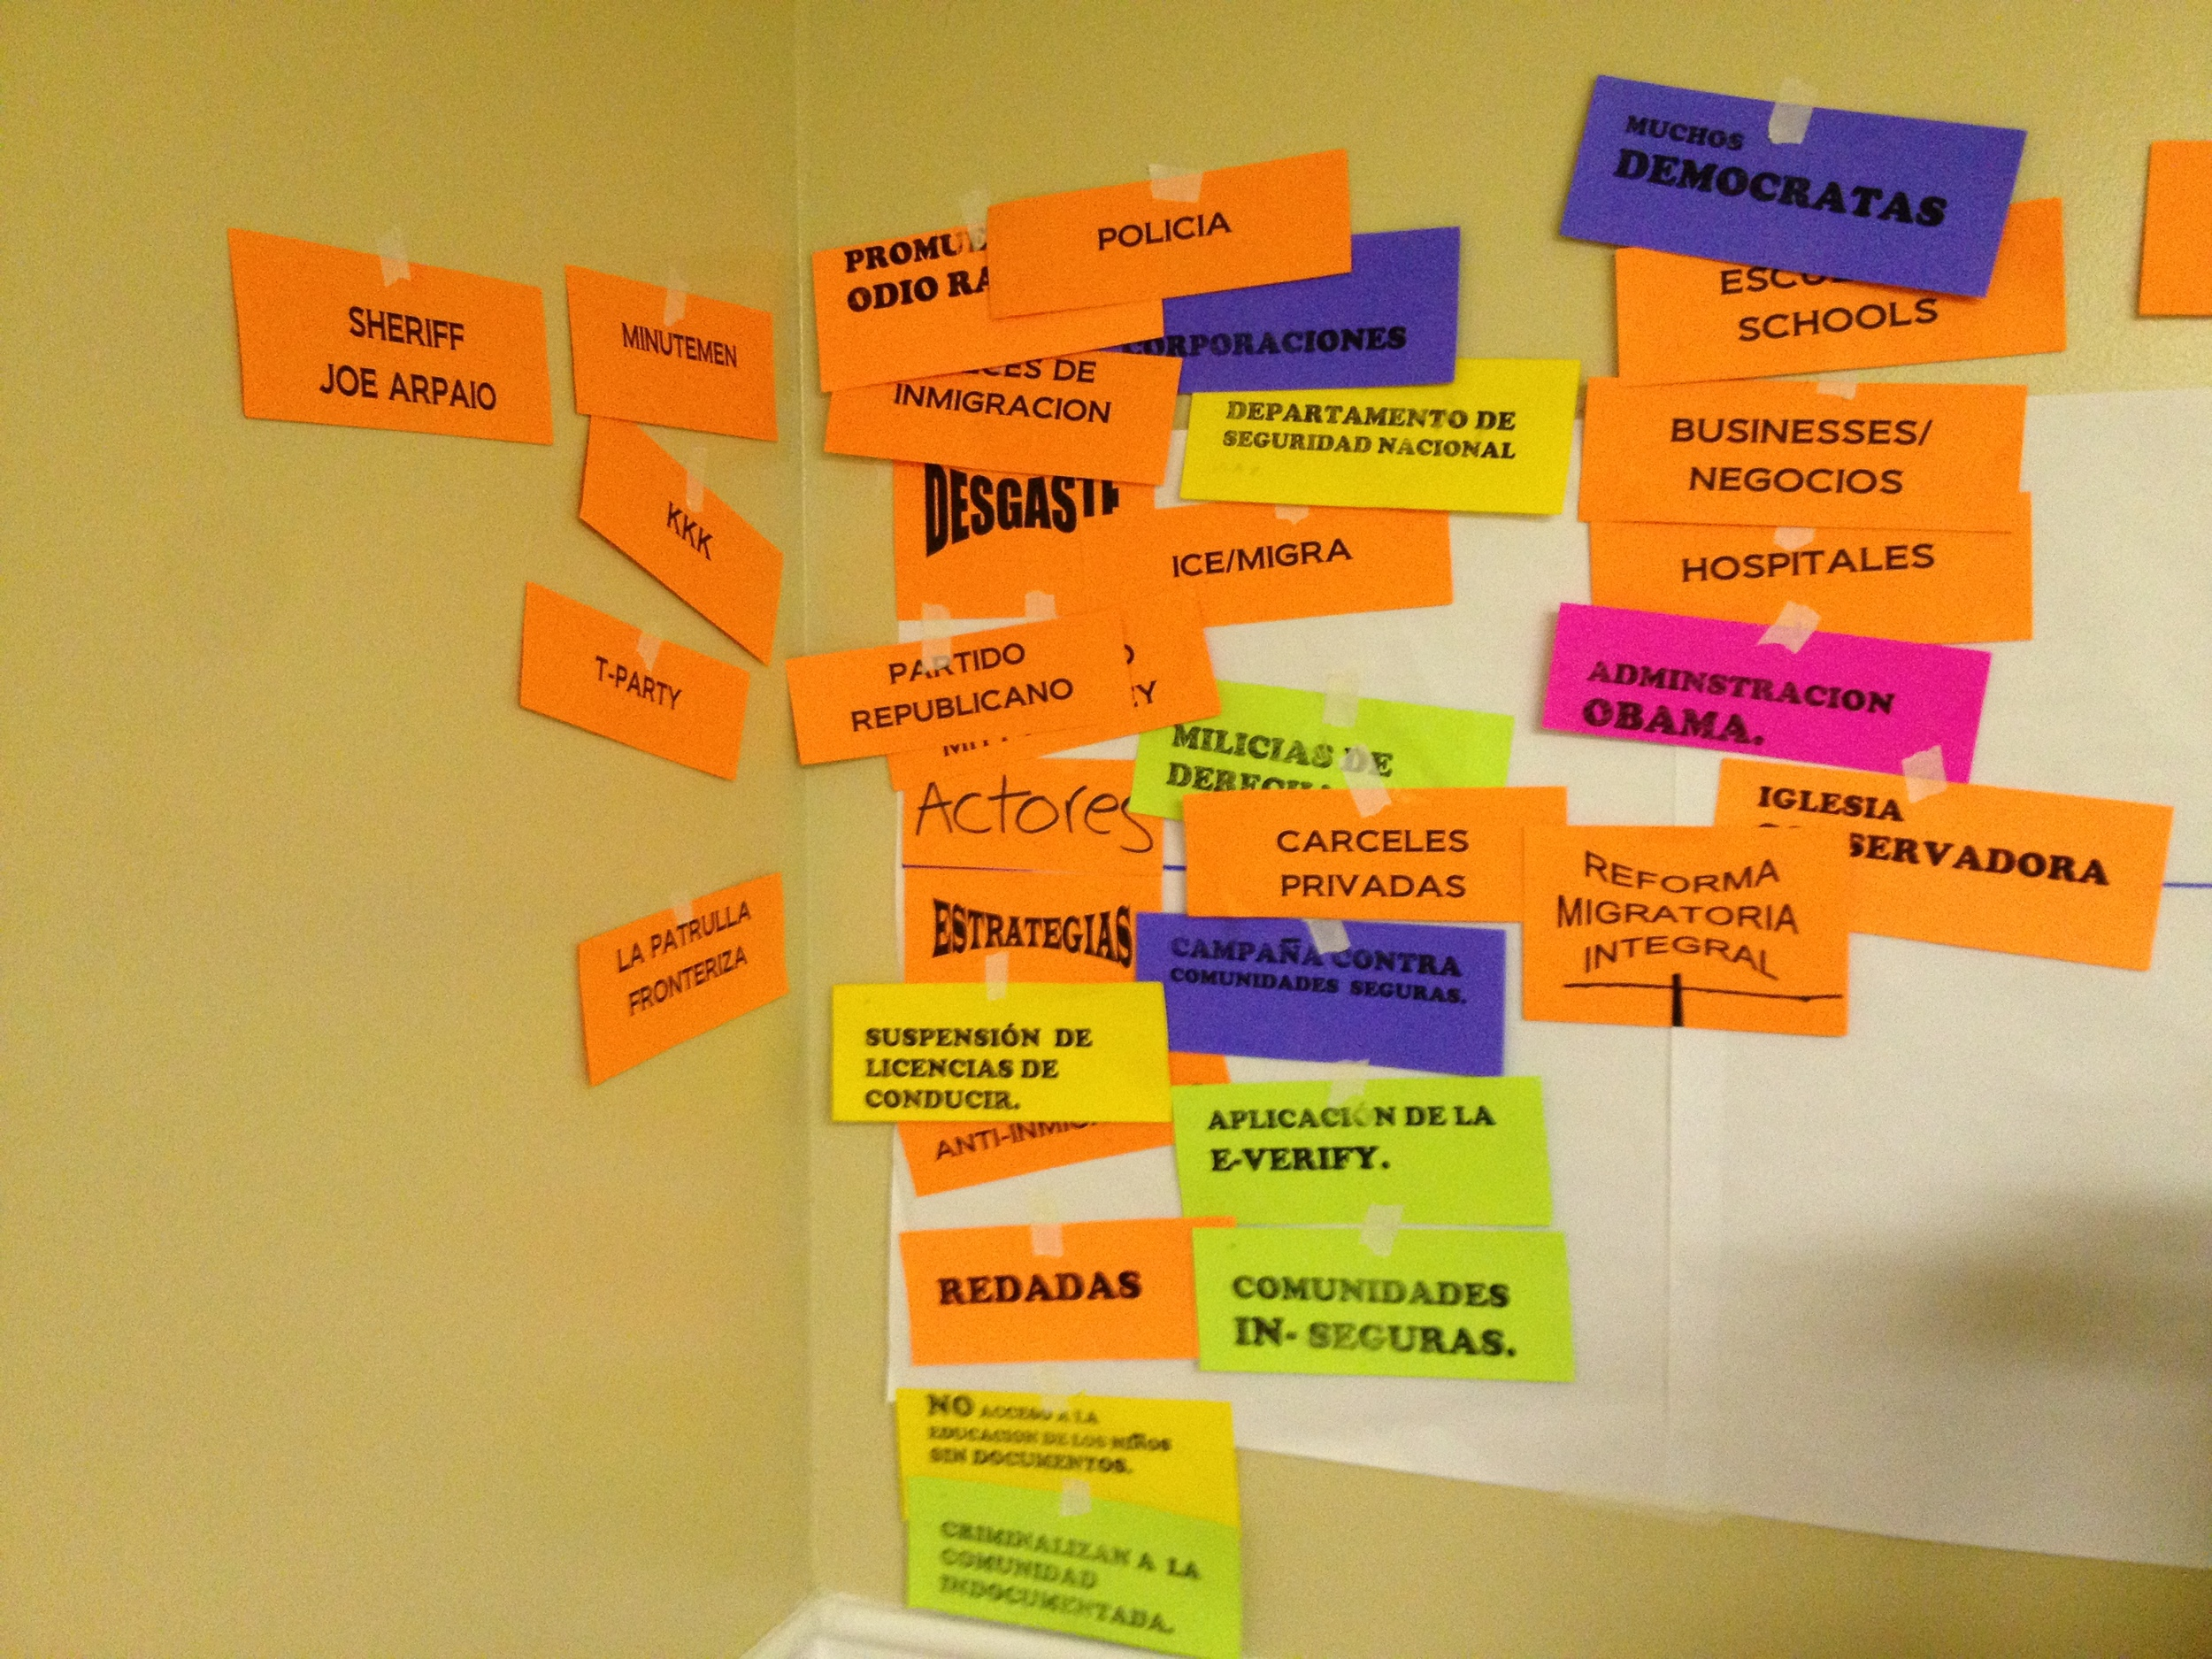 Stuesse - Immigrant Policing, Doraville Meeting 2013-2-15.jpg